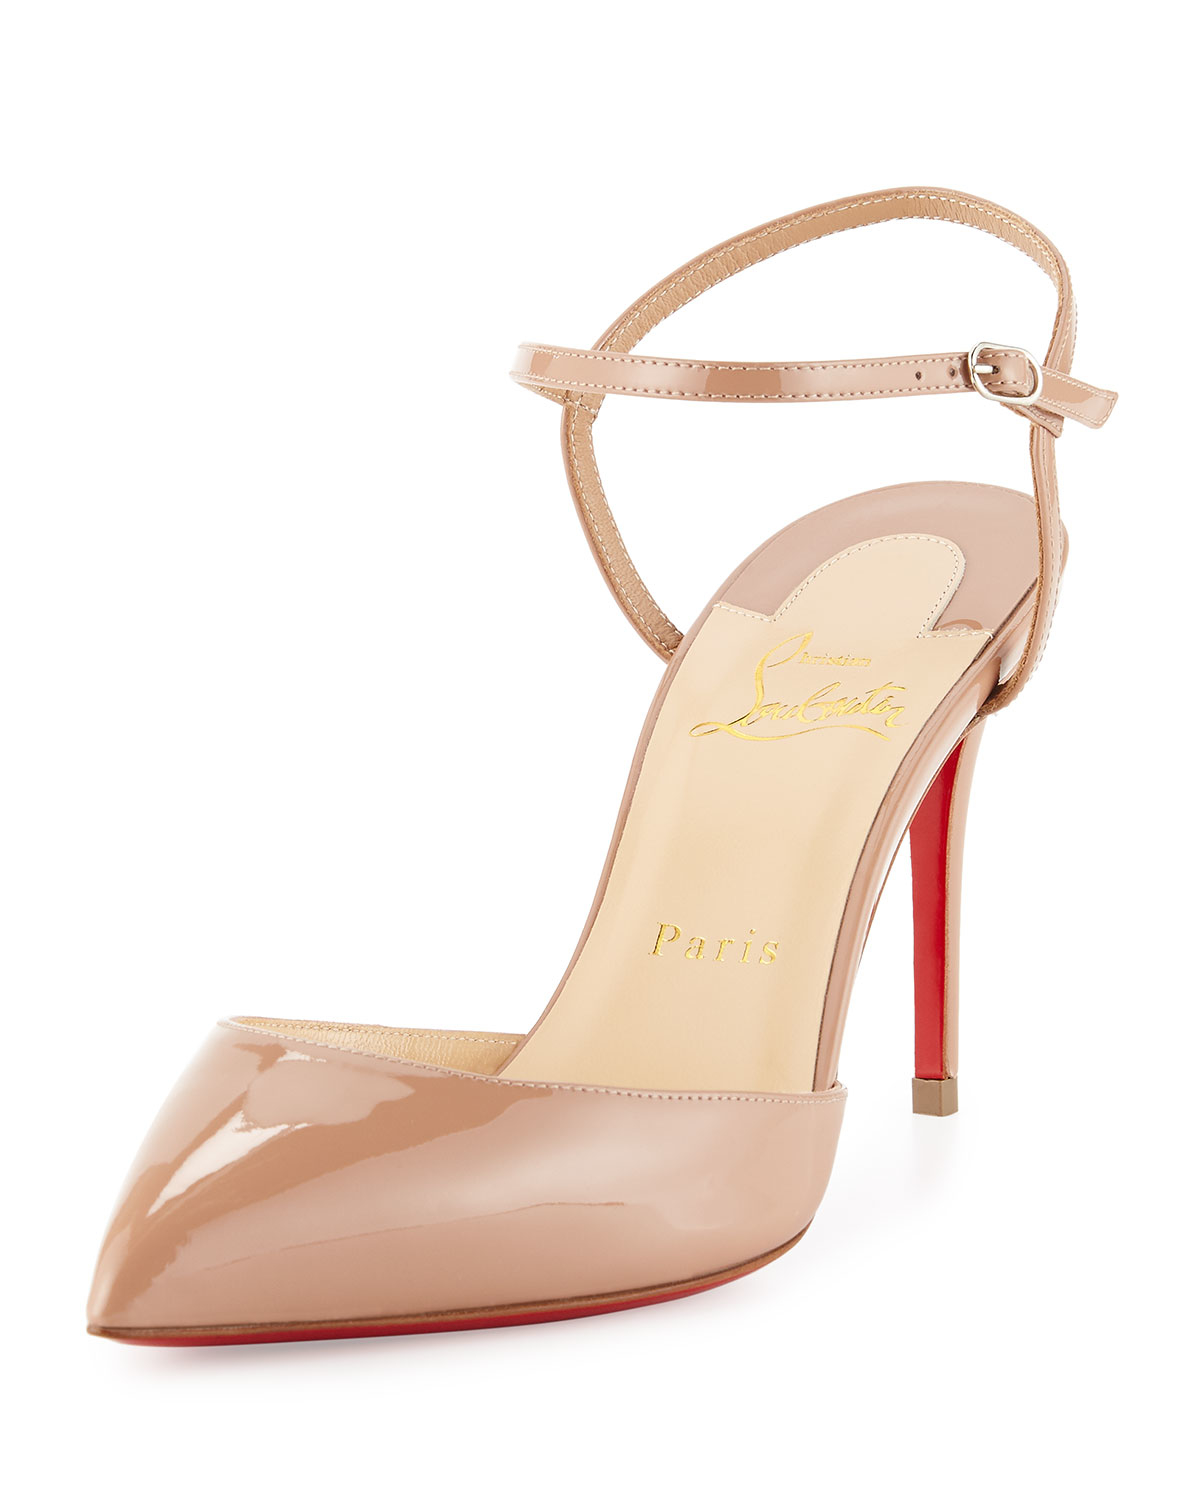 Christian louboutin Rivierina Ankle-Strap Patent Leather Pumps in ...